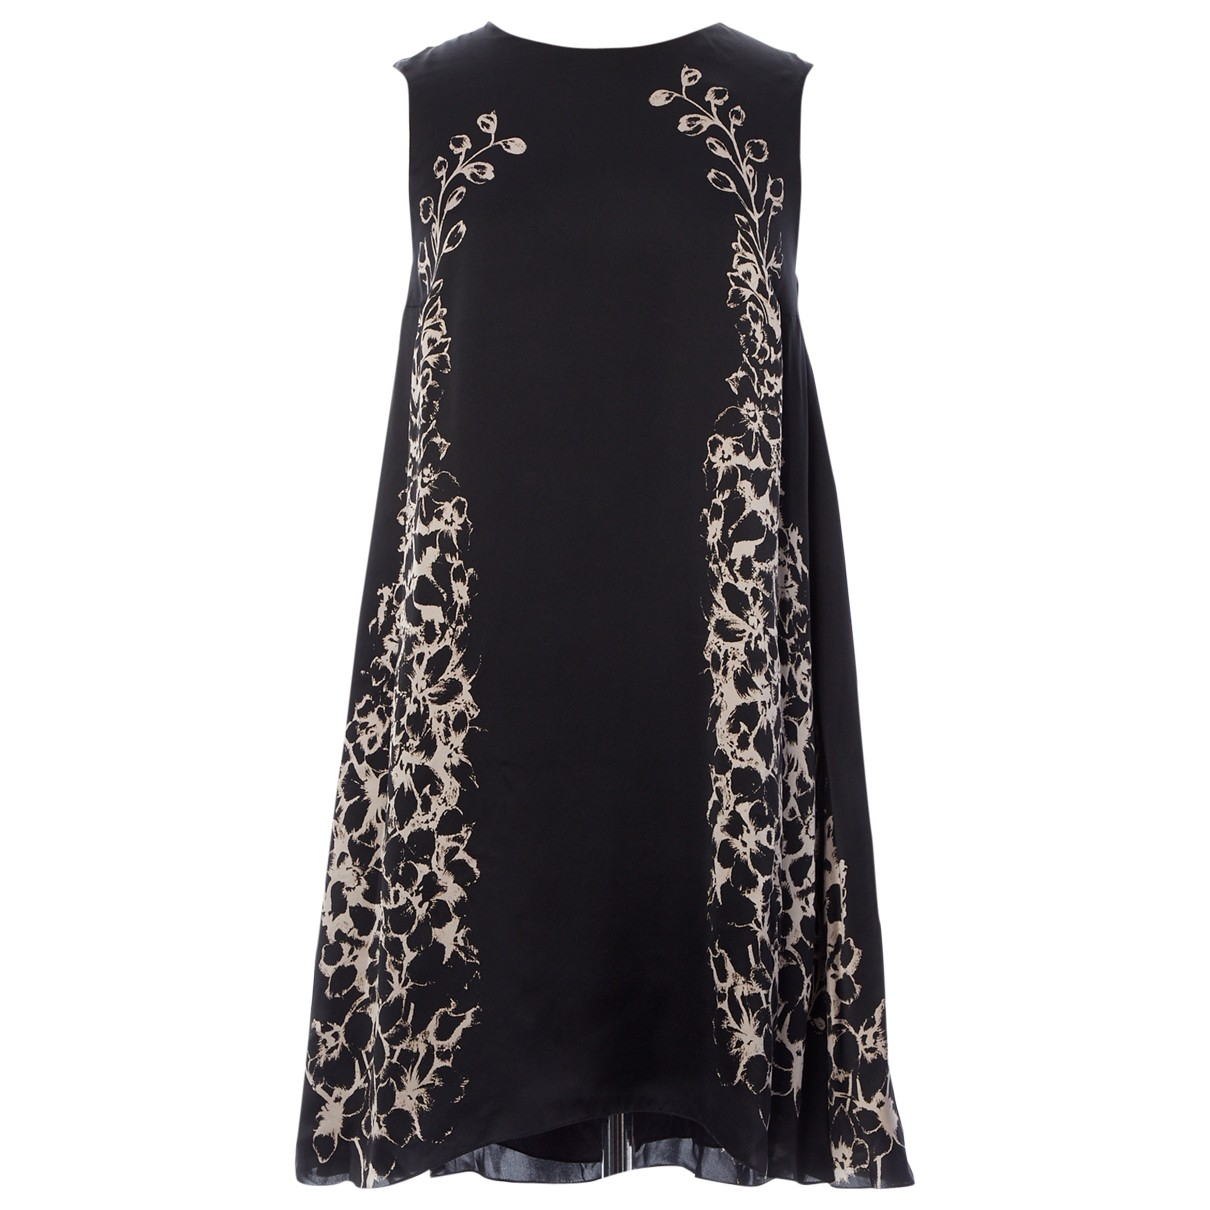 Mulberry \N Black Silk dress for Women 8 UK